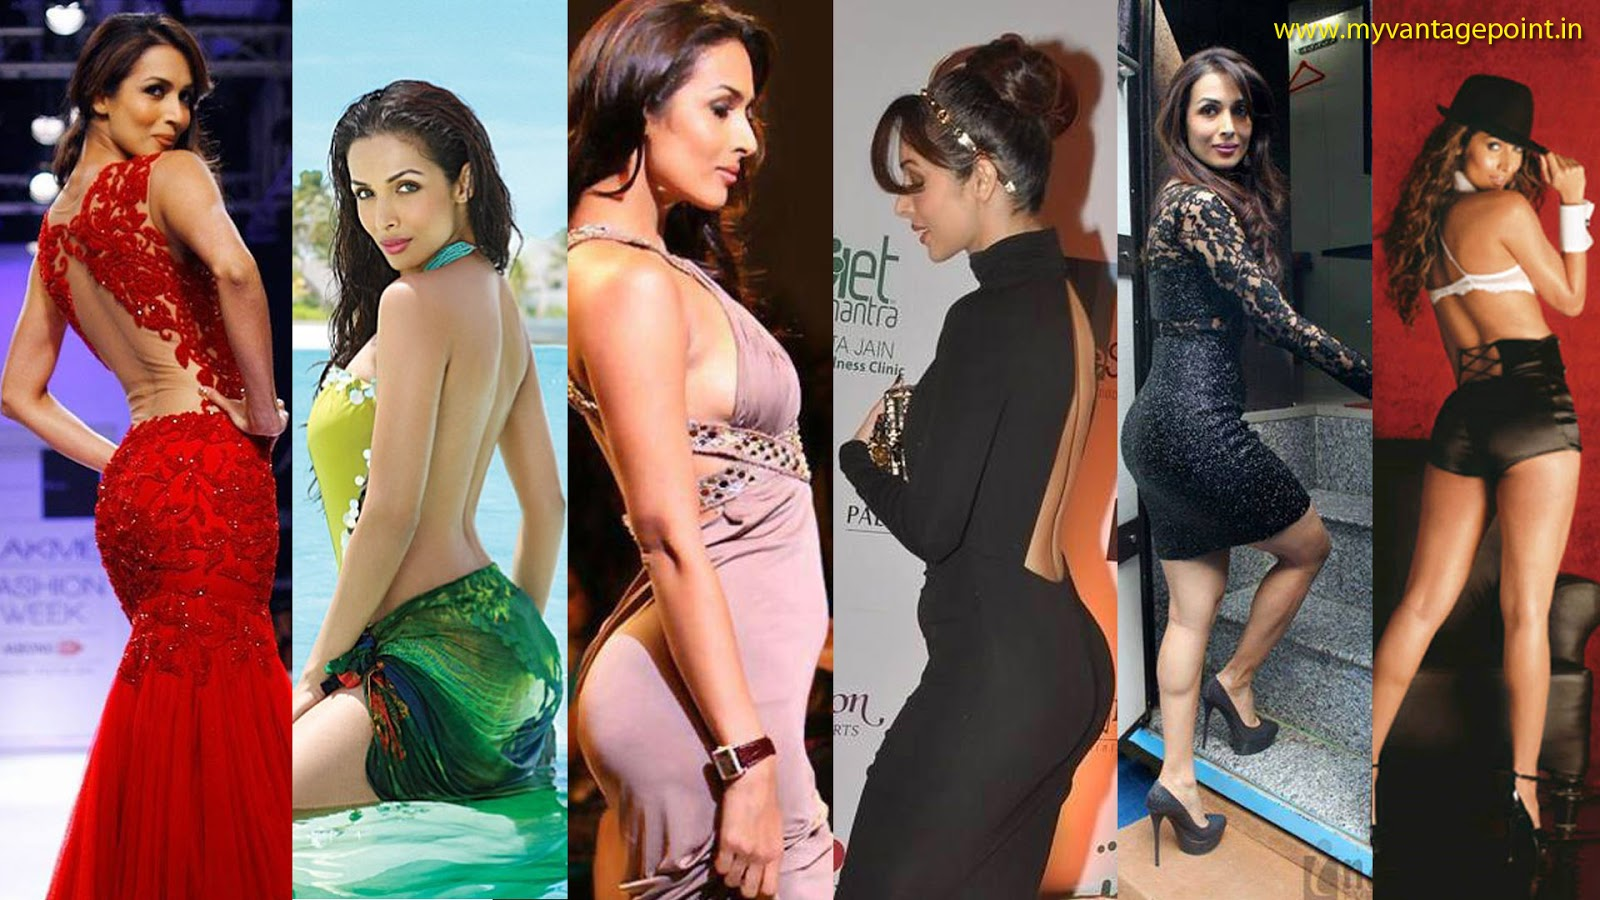 Malaika Arora hot, Malaika Arora sexy, Malaika Arora HD wallpaper, Malaika Arora Spicy Photos, Malaika Arora backless, Malaika Arora sexy back, Malaika Arora backshow, Malaika Arora thunder thighs, Malaika Arora in tight dress, Malaika Arora in short dress, Malaika Arora best hot HD wallpaper